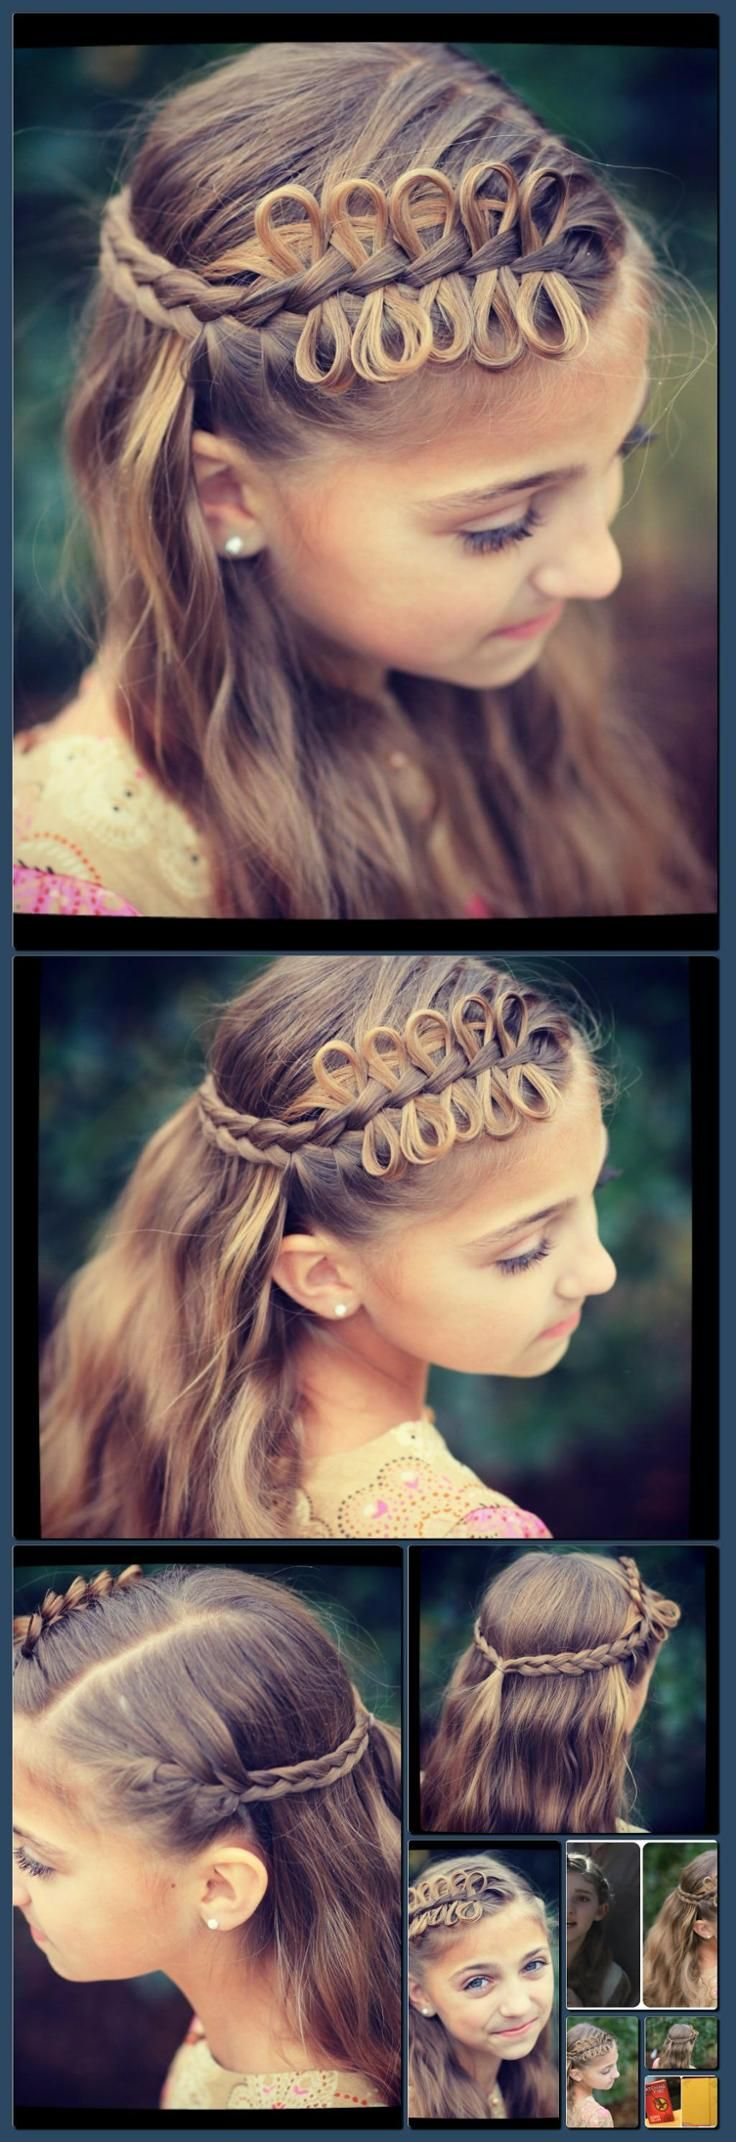 Hunger games hairstyles cute girls hairstyles collage made with